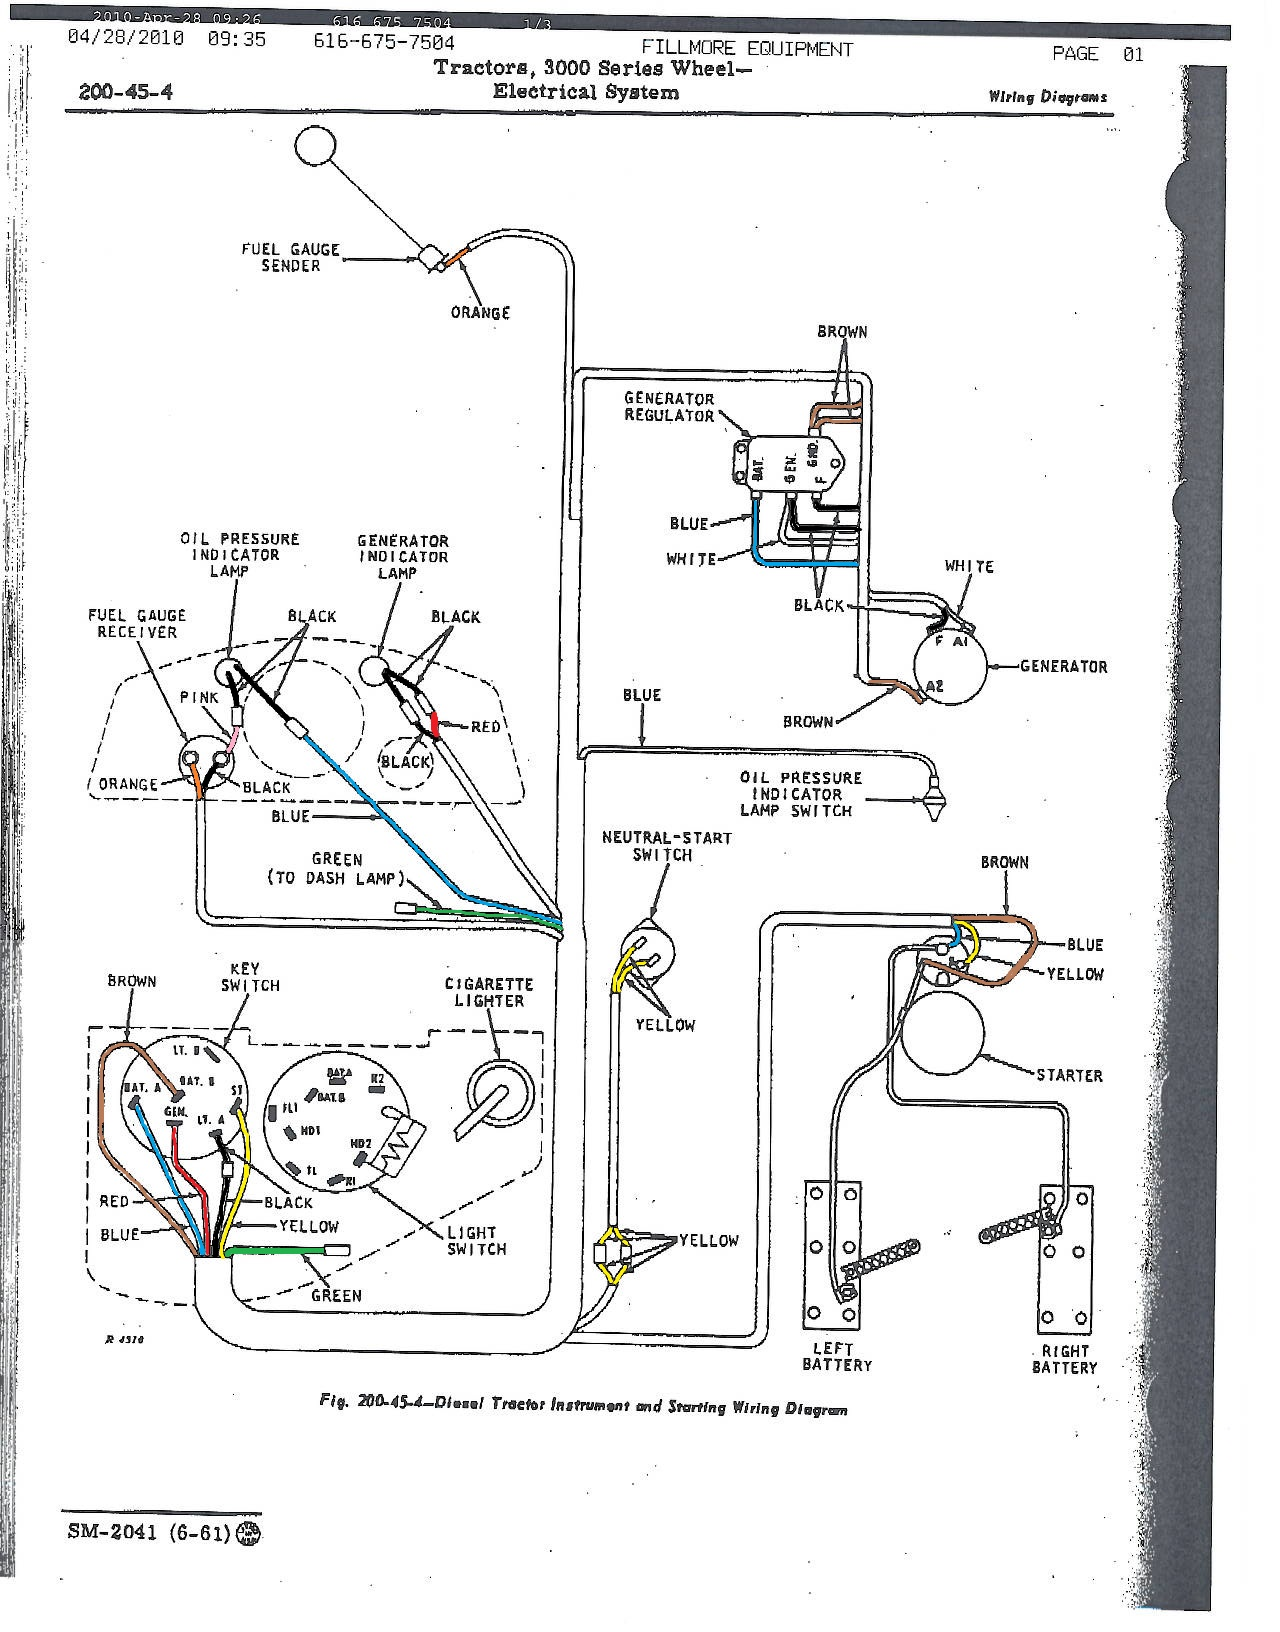 John Deere 3020 Ignition Wiring Diagram Free Download Manual E Books Tractor Switch 4020 Detailedjd 630 Electrical Schematic